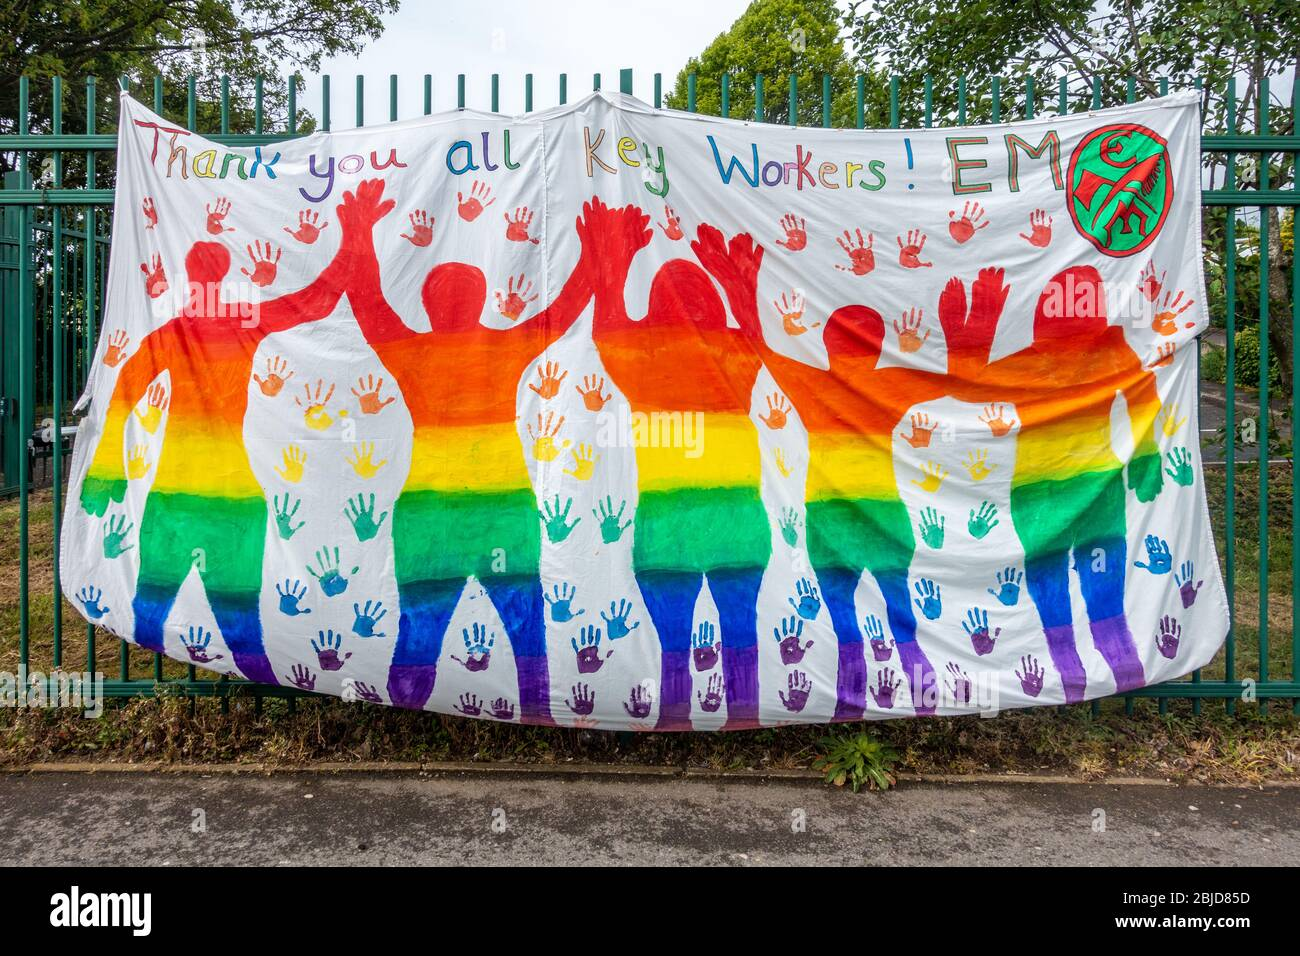 a-large-colourful-banner-attached-to-the-railings-of-a-primary-school-in-reading-uk-thanks-key-workers-for-working-during-the-coronavirus-pandemic-2BJD85D.jpg